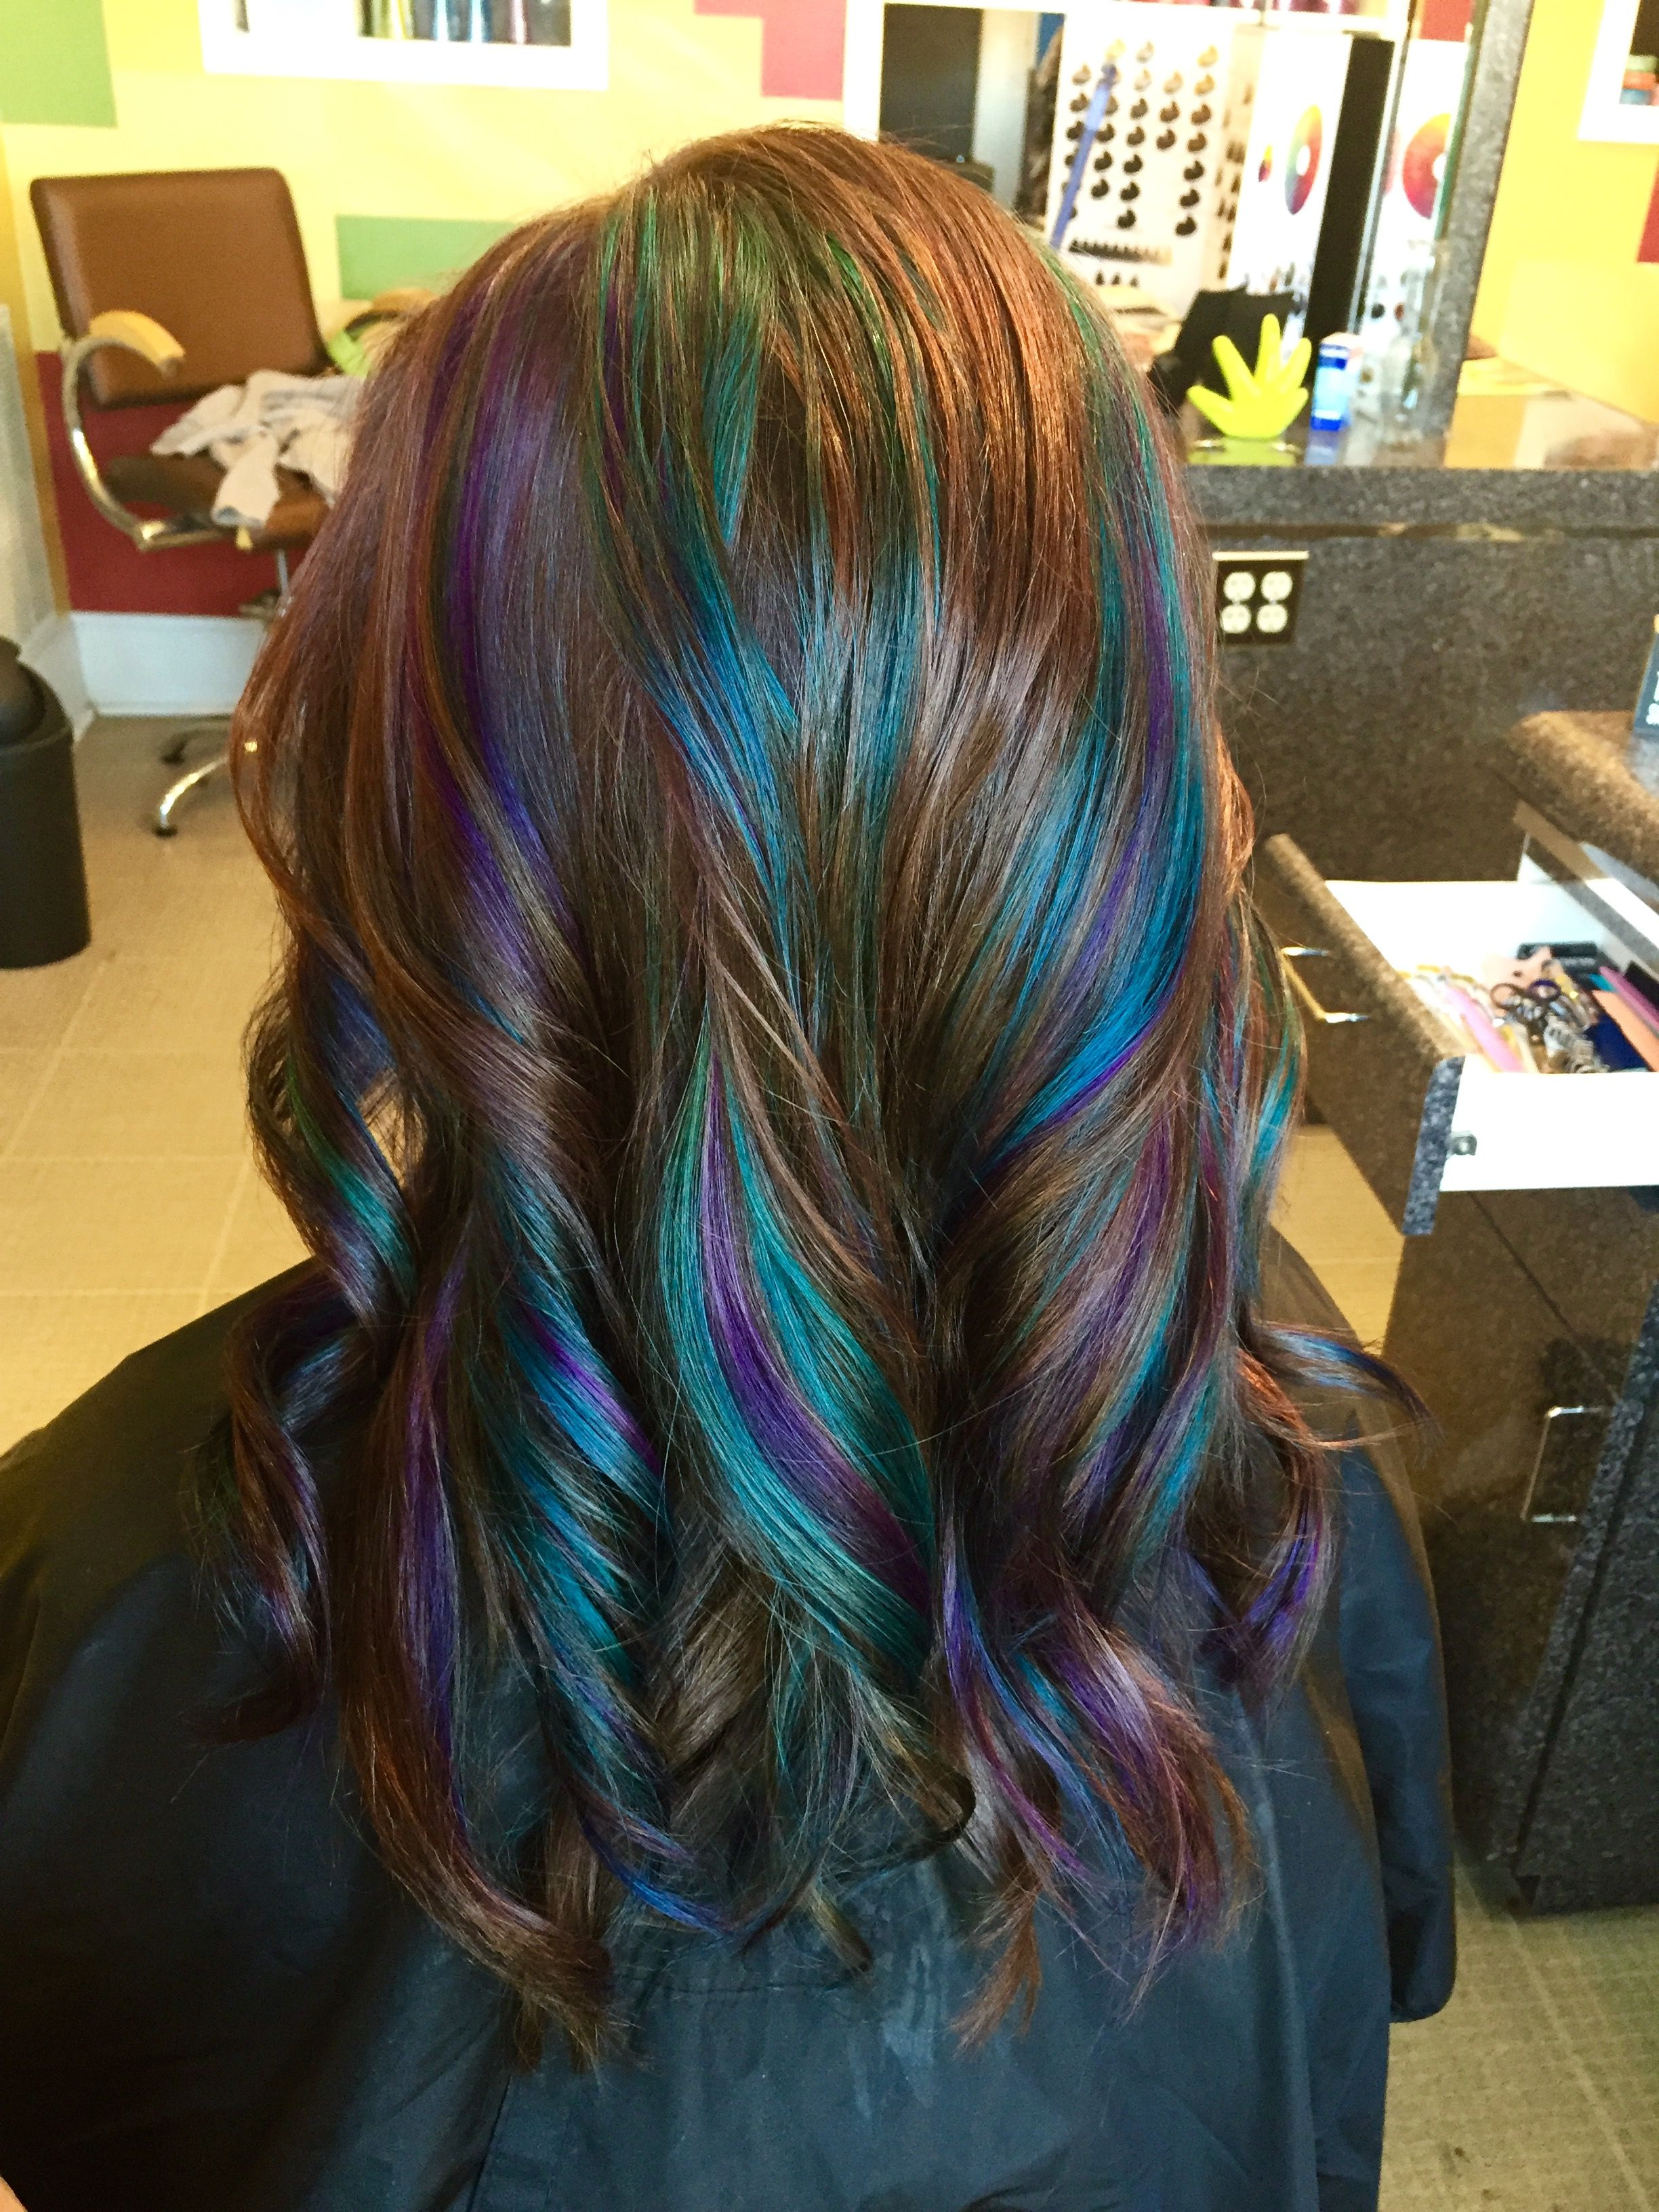 Brown haircolor with peacock teal and purple highlights